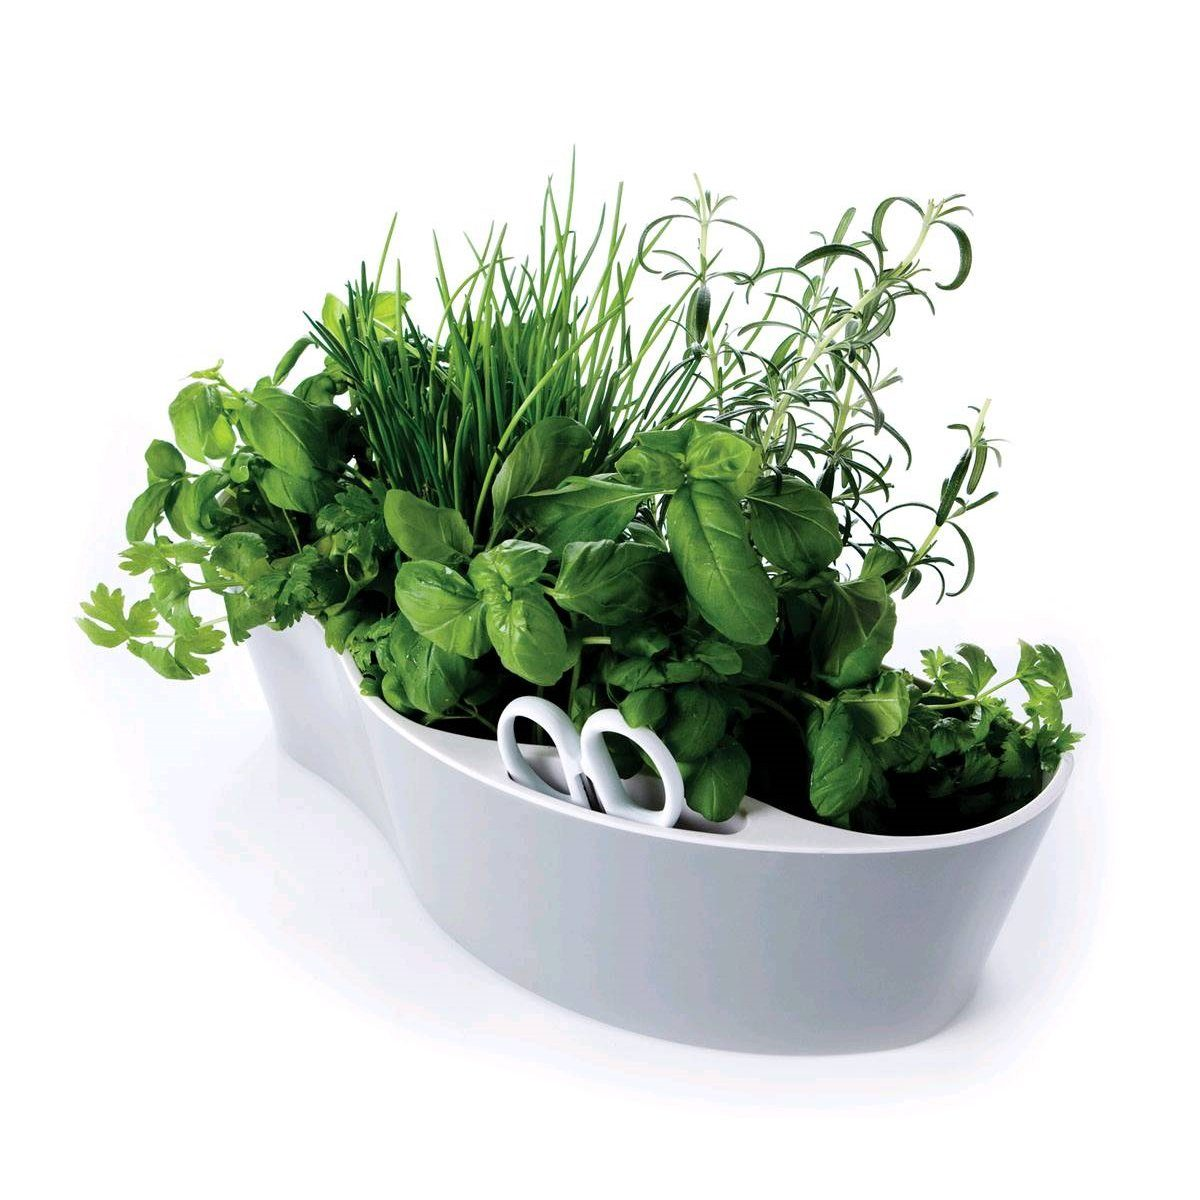 Royal VKB Royal VKB HERB GARDEN Kräuterinsel weiß-weiß